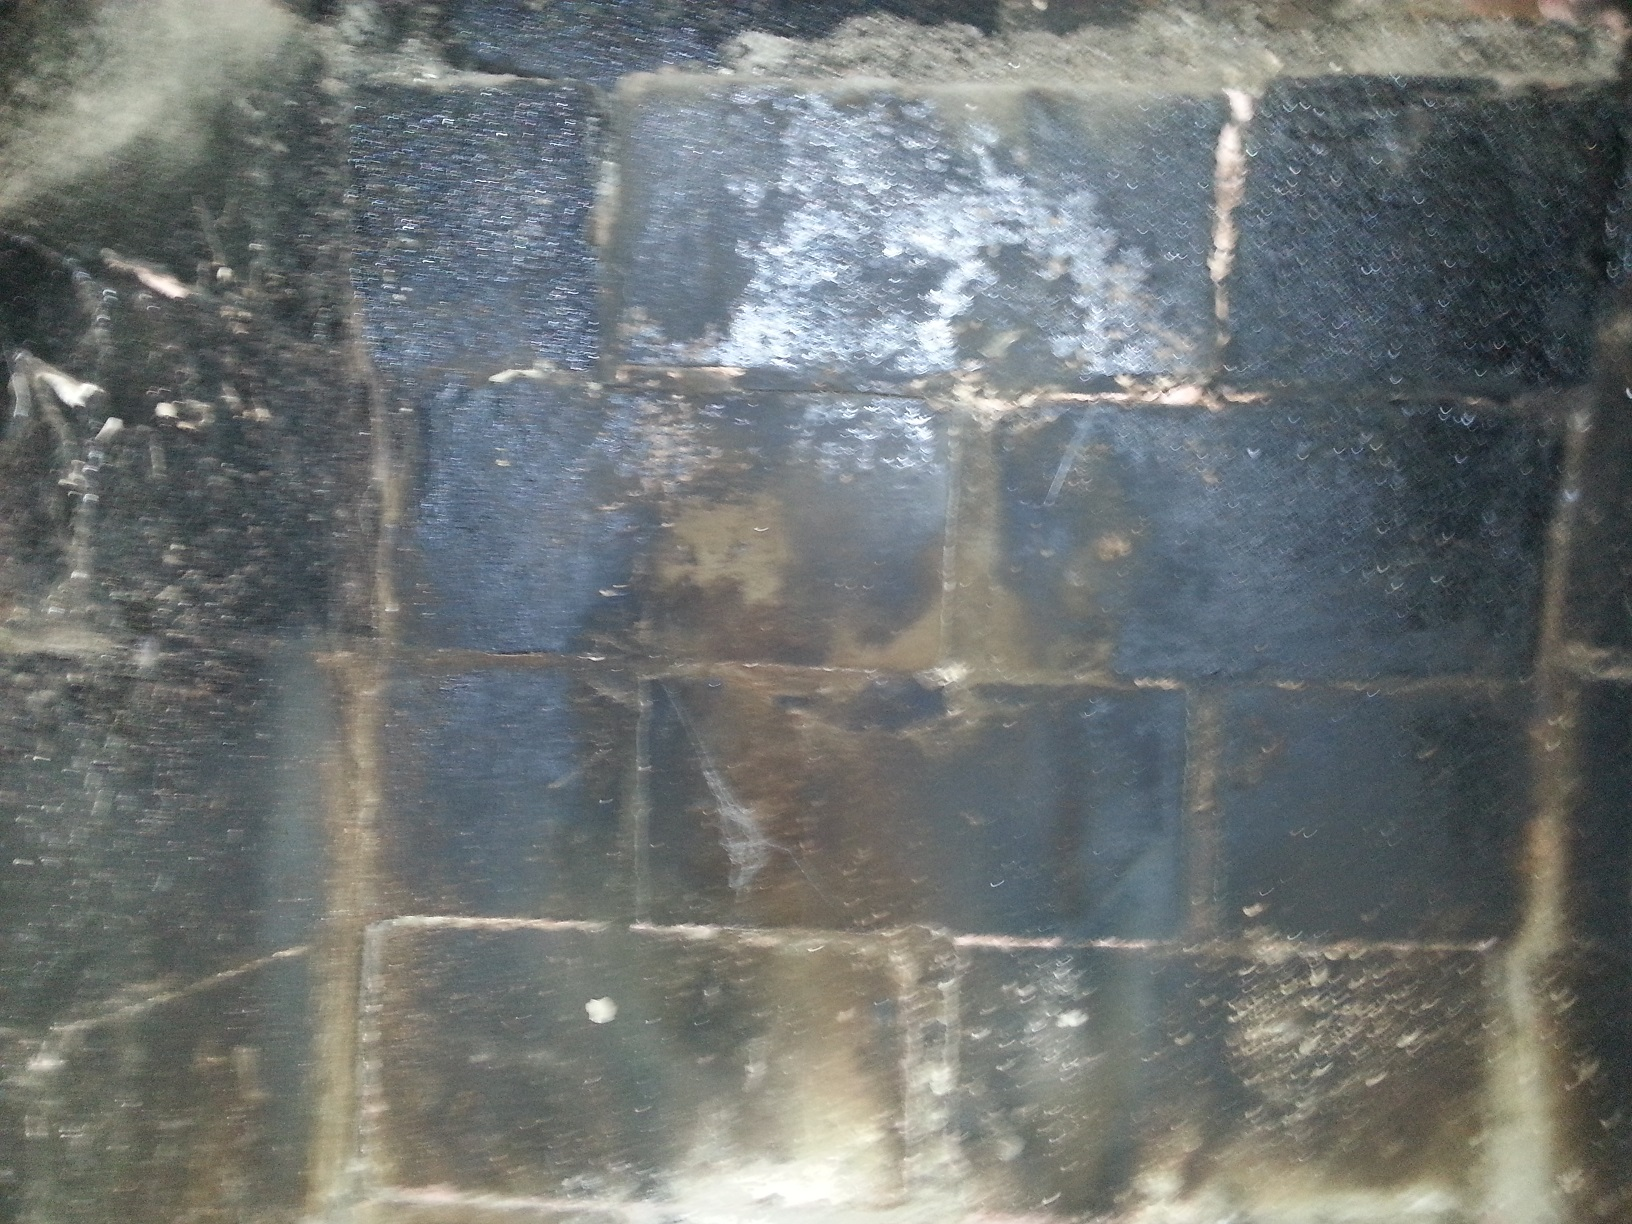 Chimney Fireplace Repairs Inside Your Firebox Fire Brick